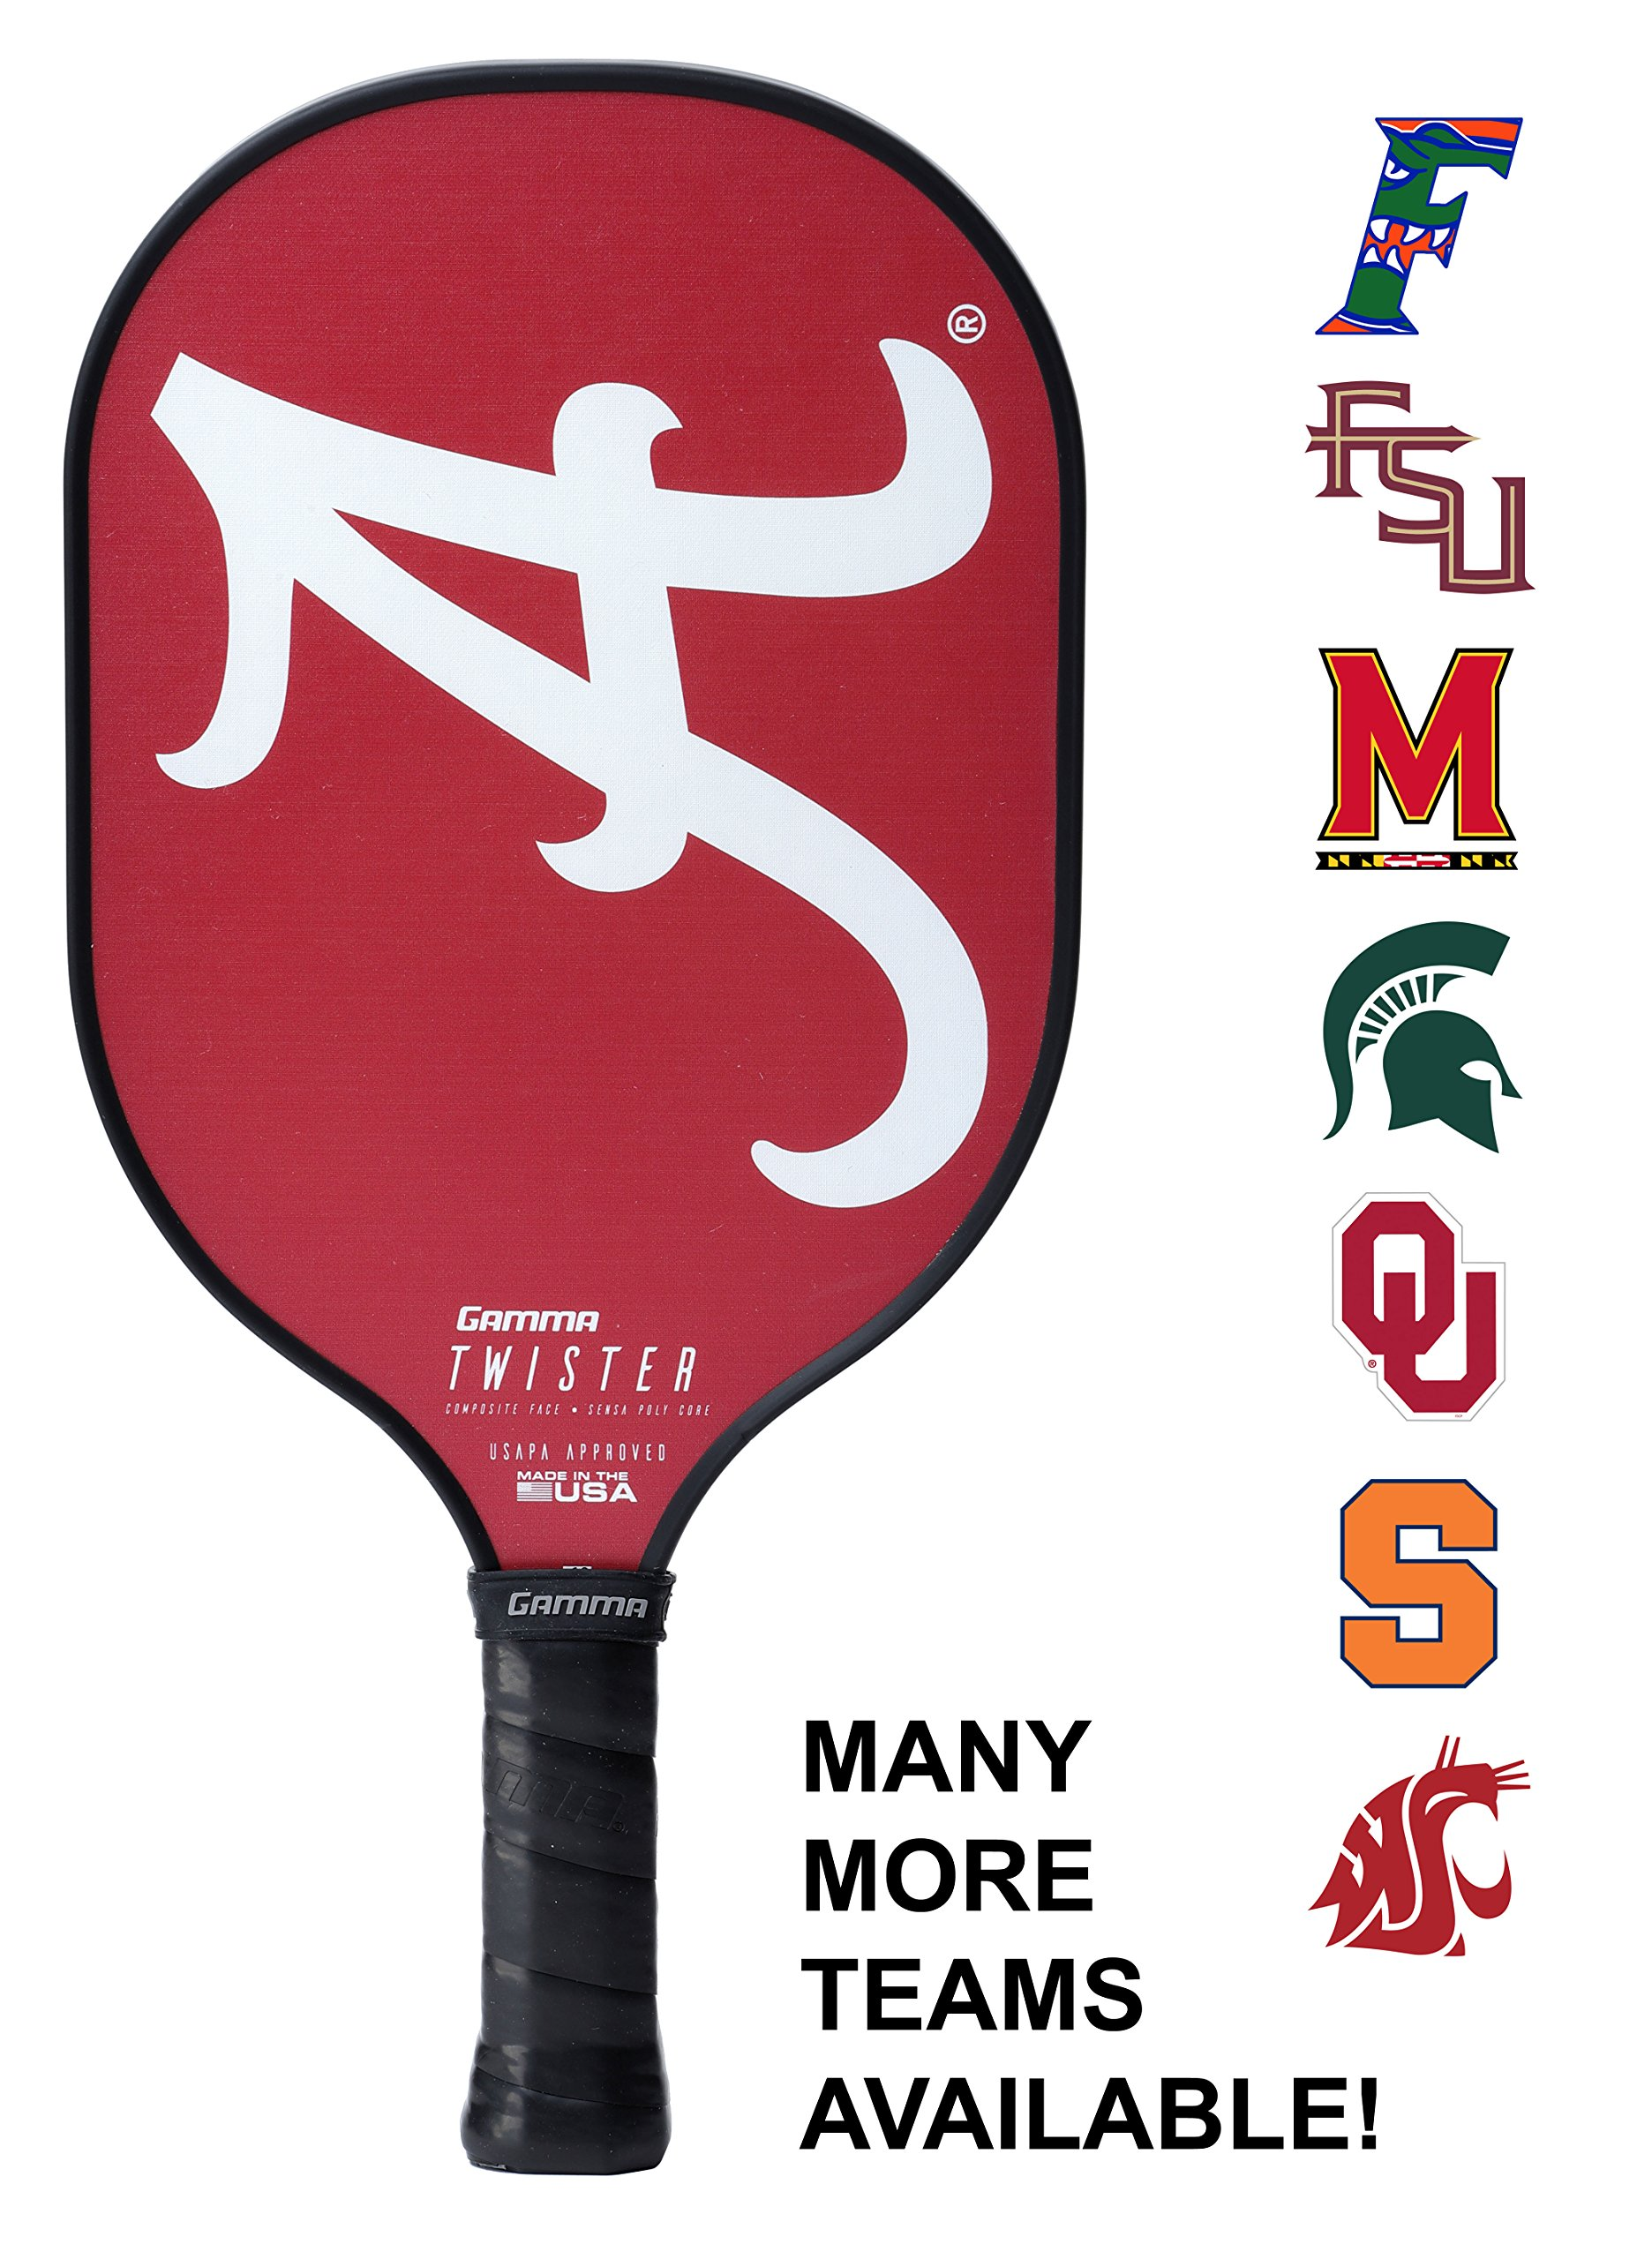 Gamma Collegiate Twister Composite Pickleball Paddle: Pickle Ball Paddles for Indoor & Outdoor Play - USAPA Approved Racquet for Adults & Kids - Alabama Crimson Tide